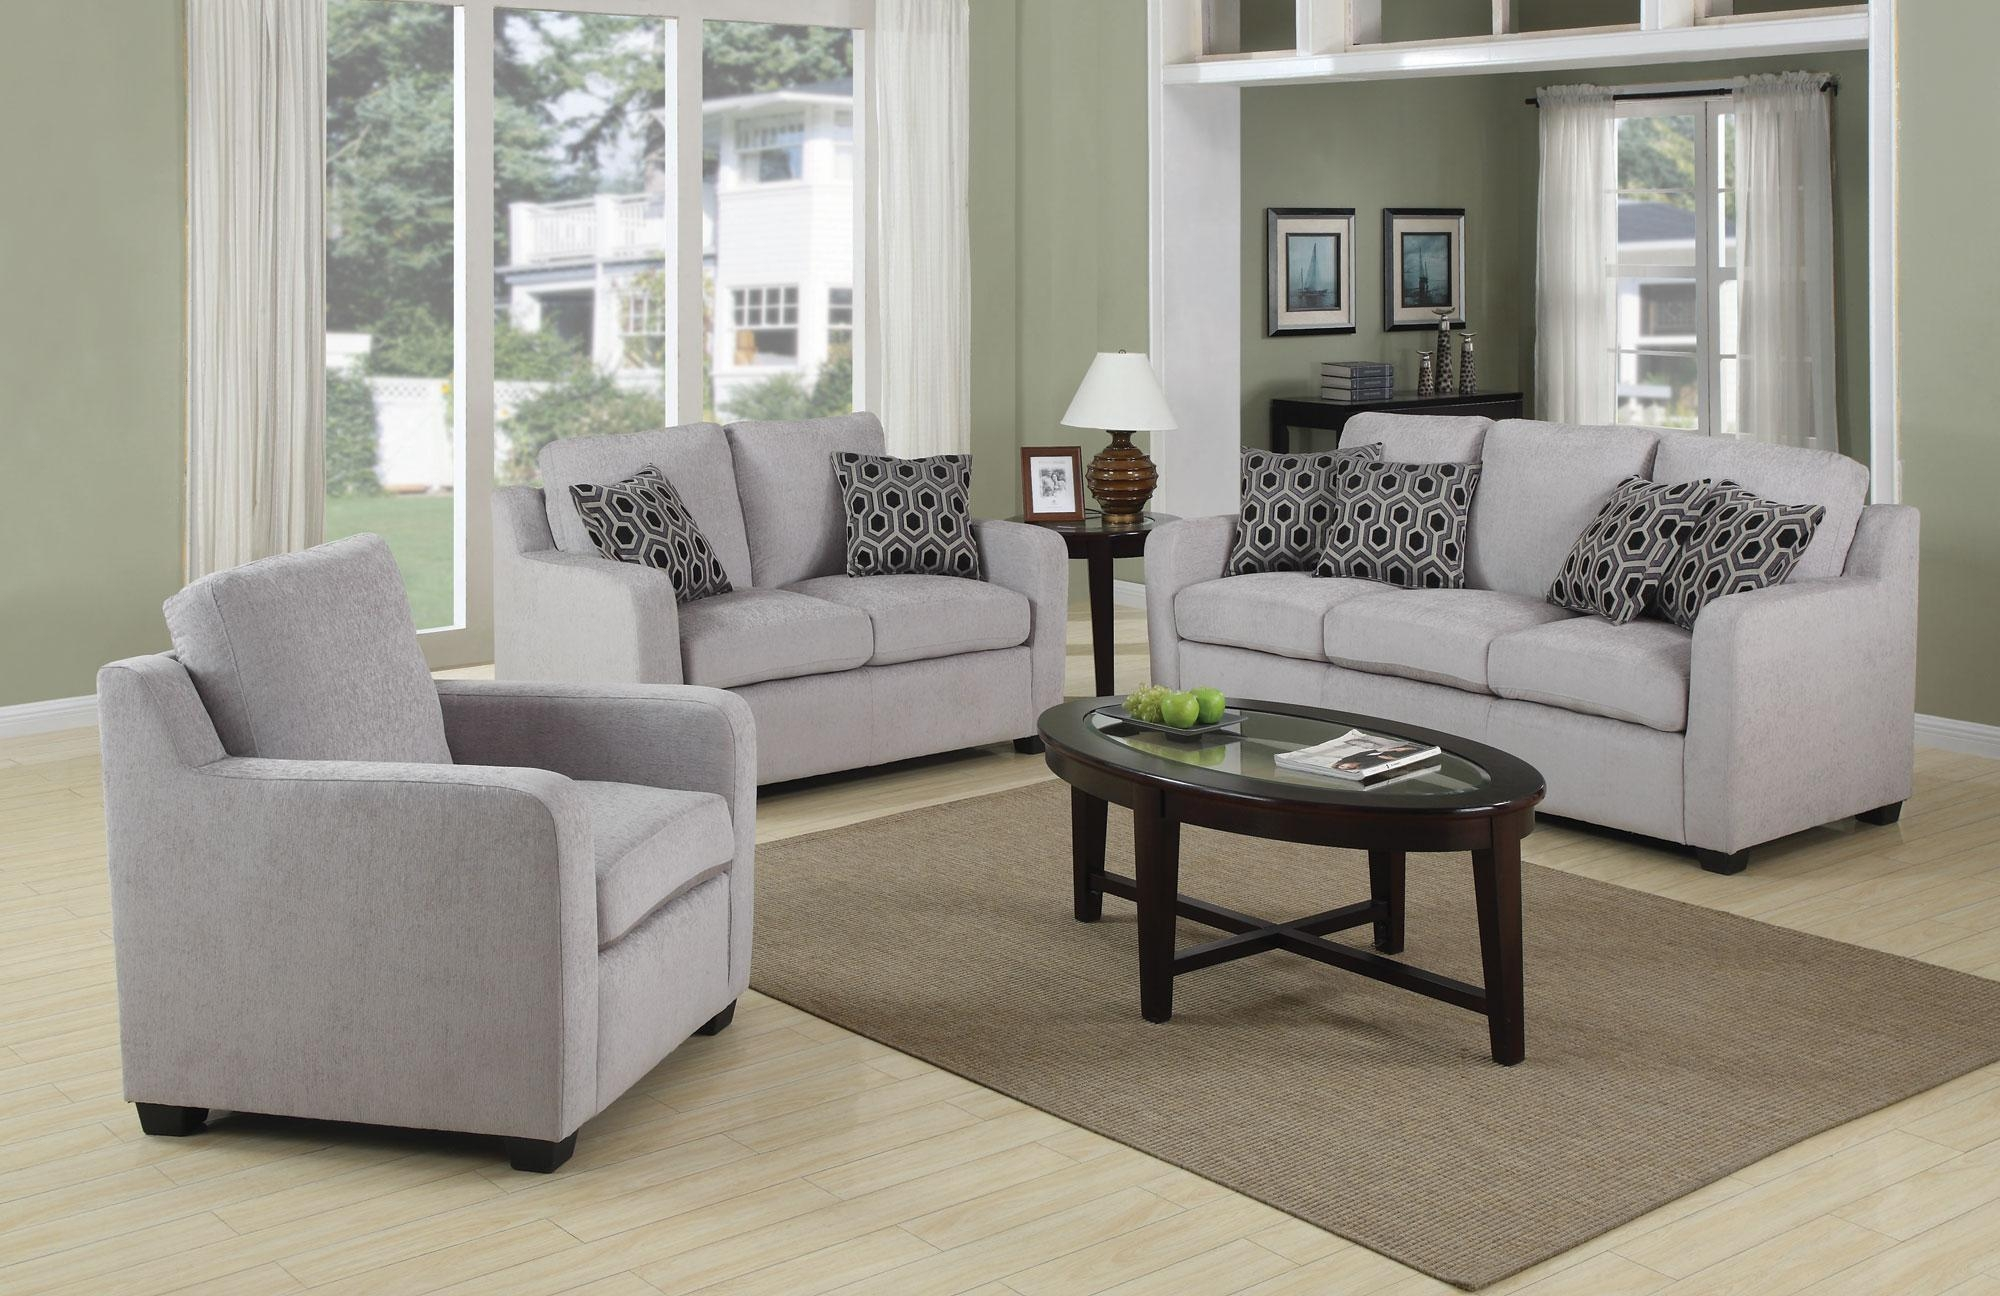 Grey Couch Living Room. Grey Sectional Sofa Living Room Modern pertaining to Gray Sofas